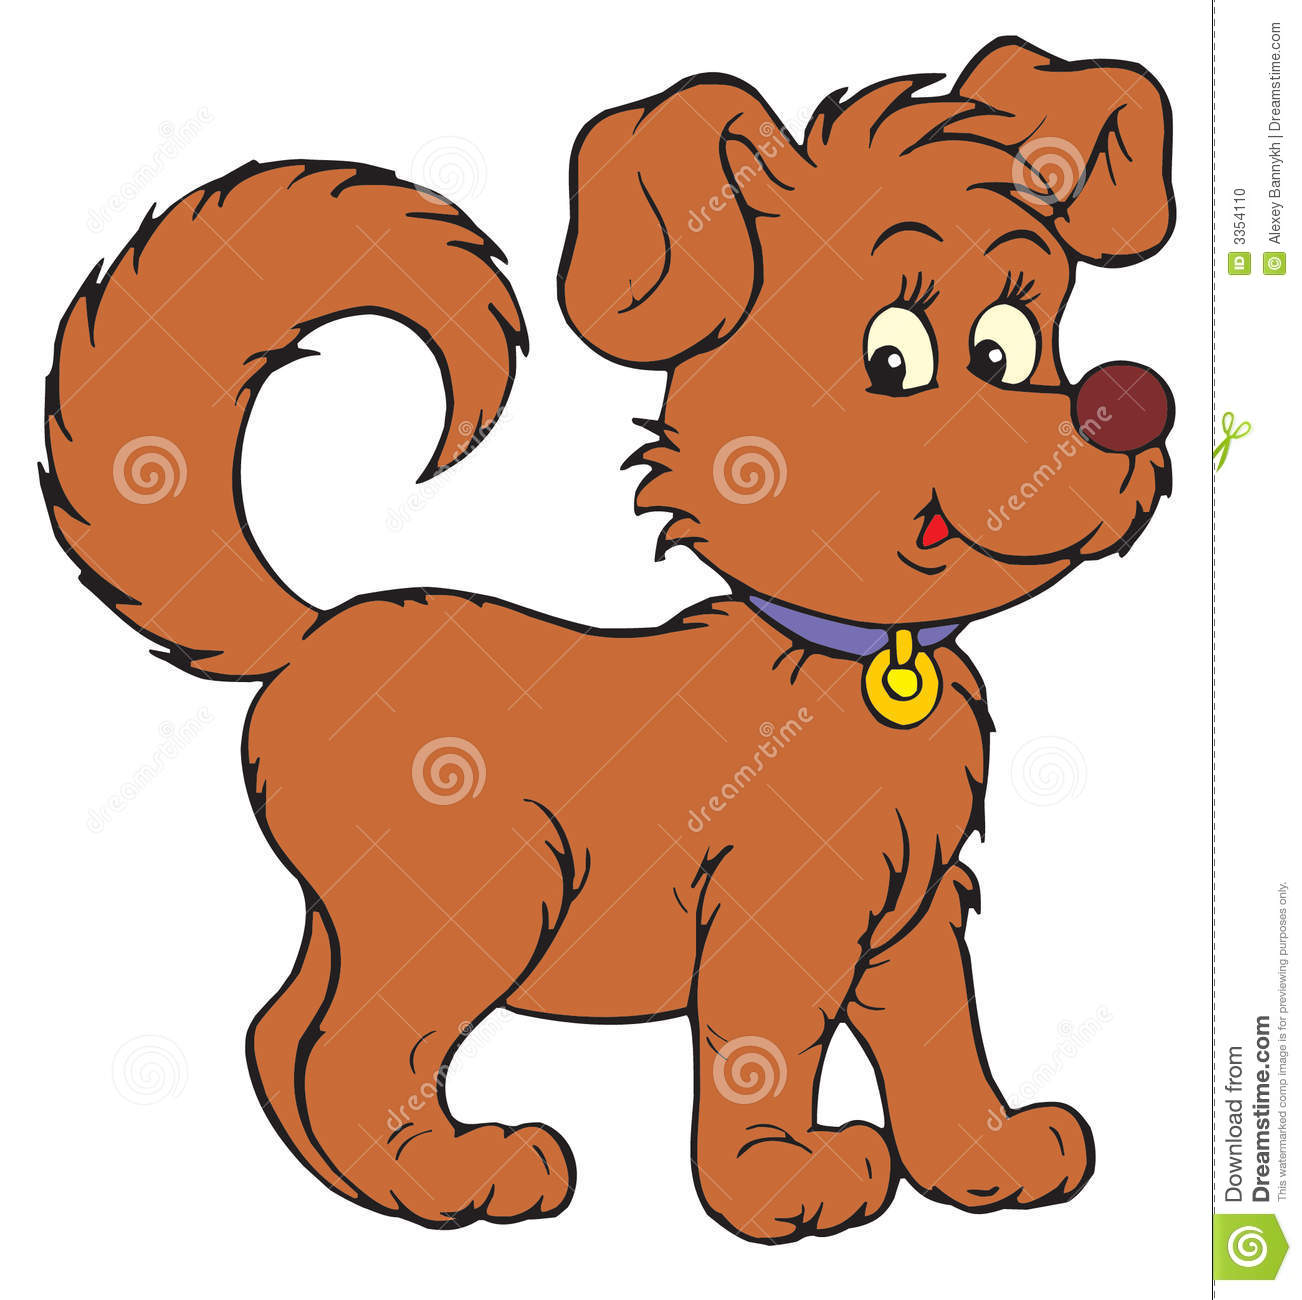 Clip art of dogs - ClipartFest